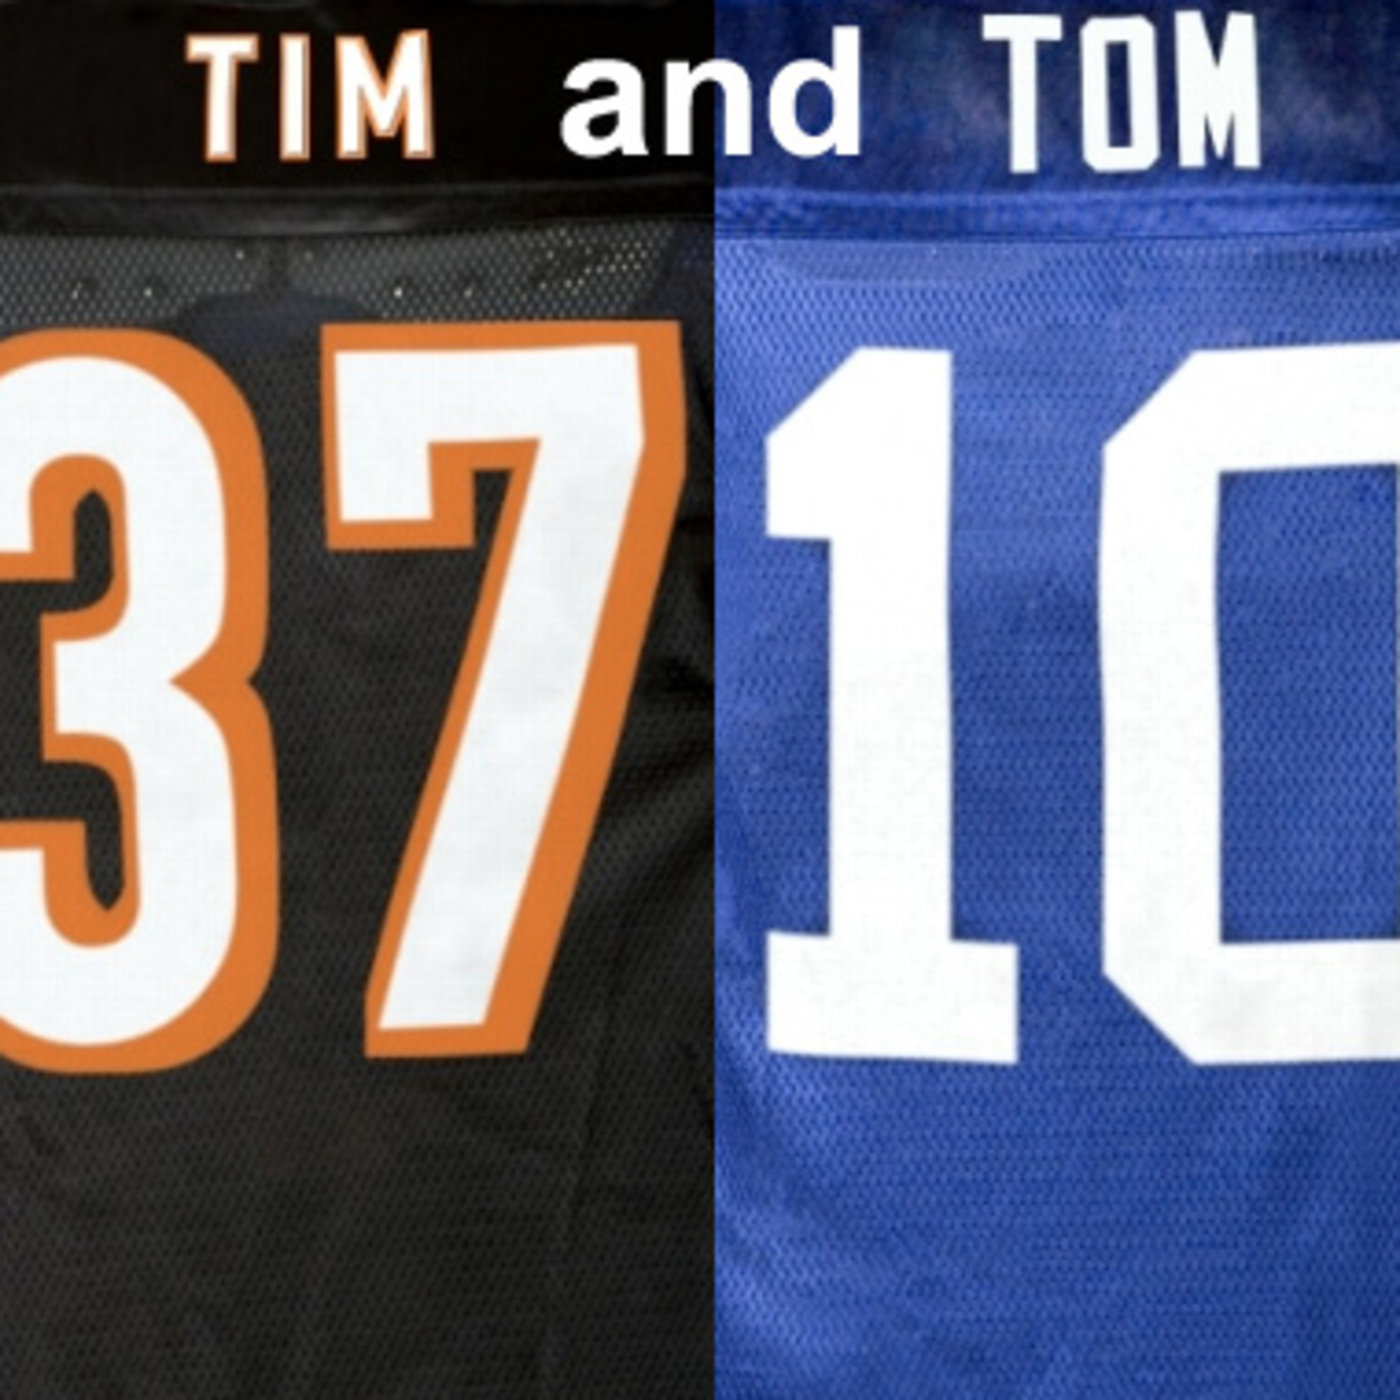 Tim and Tom